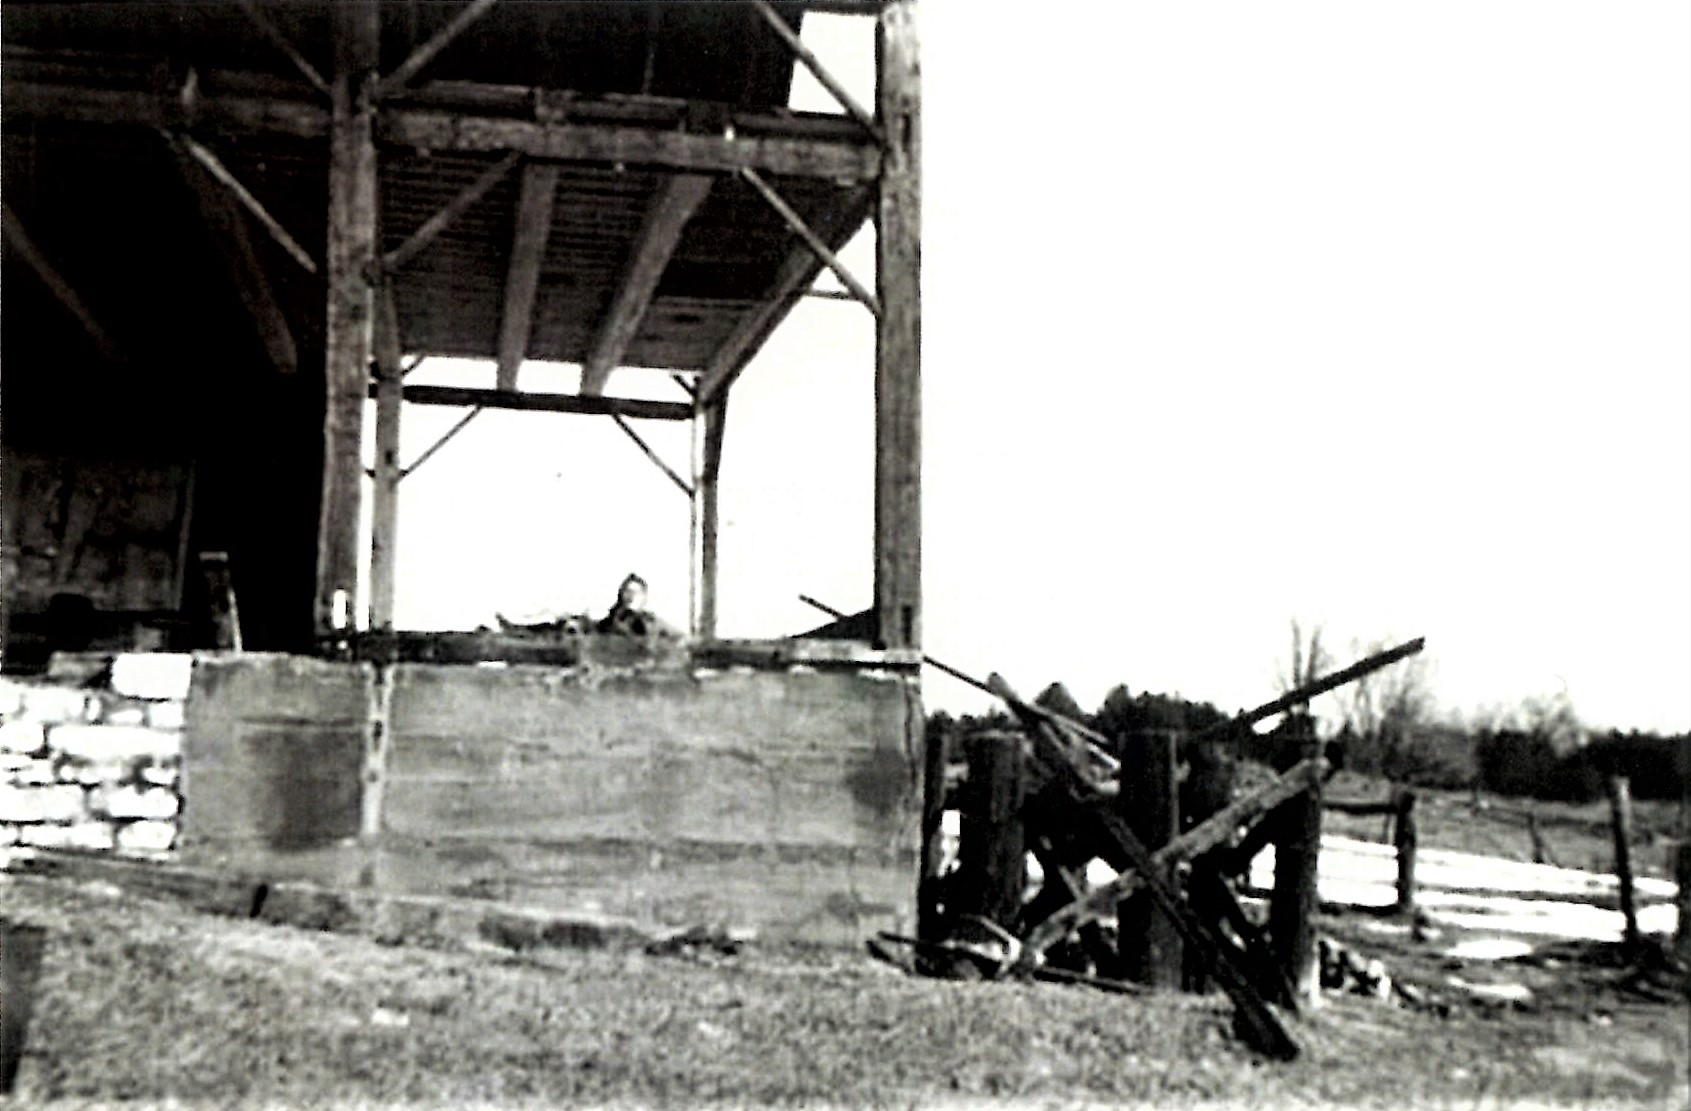 Cook cheese factory demolition c.1945